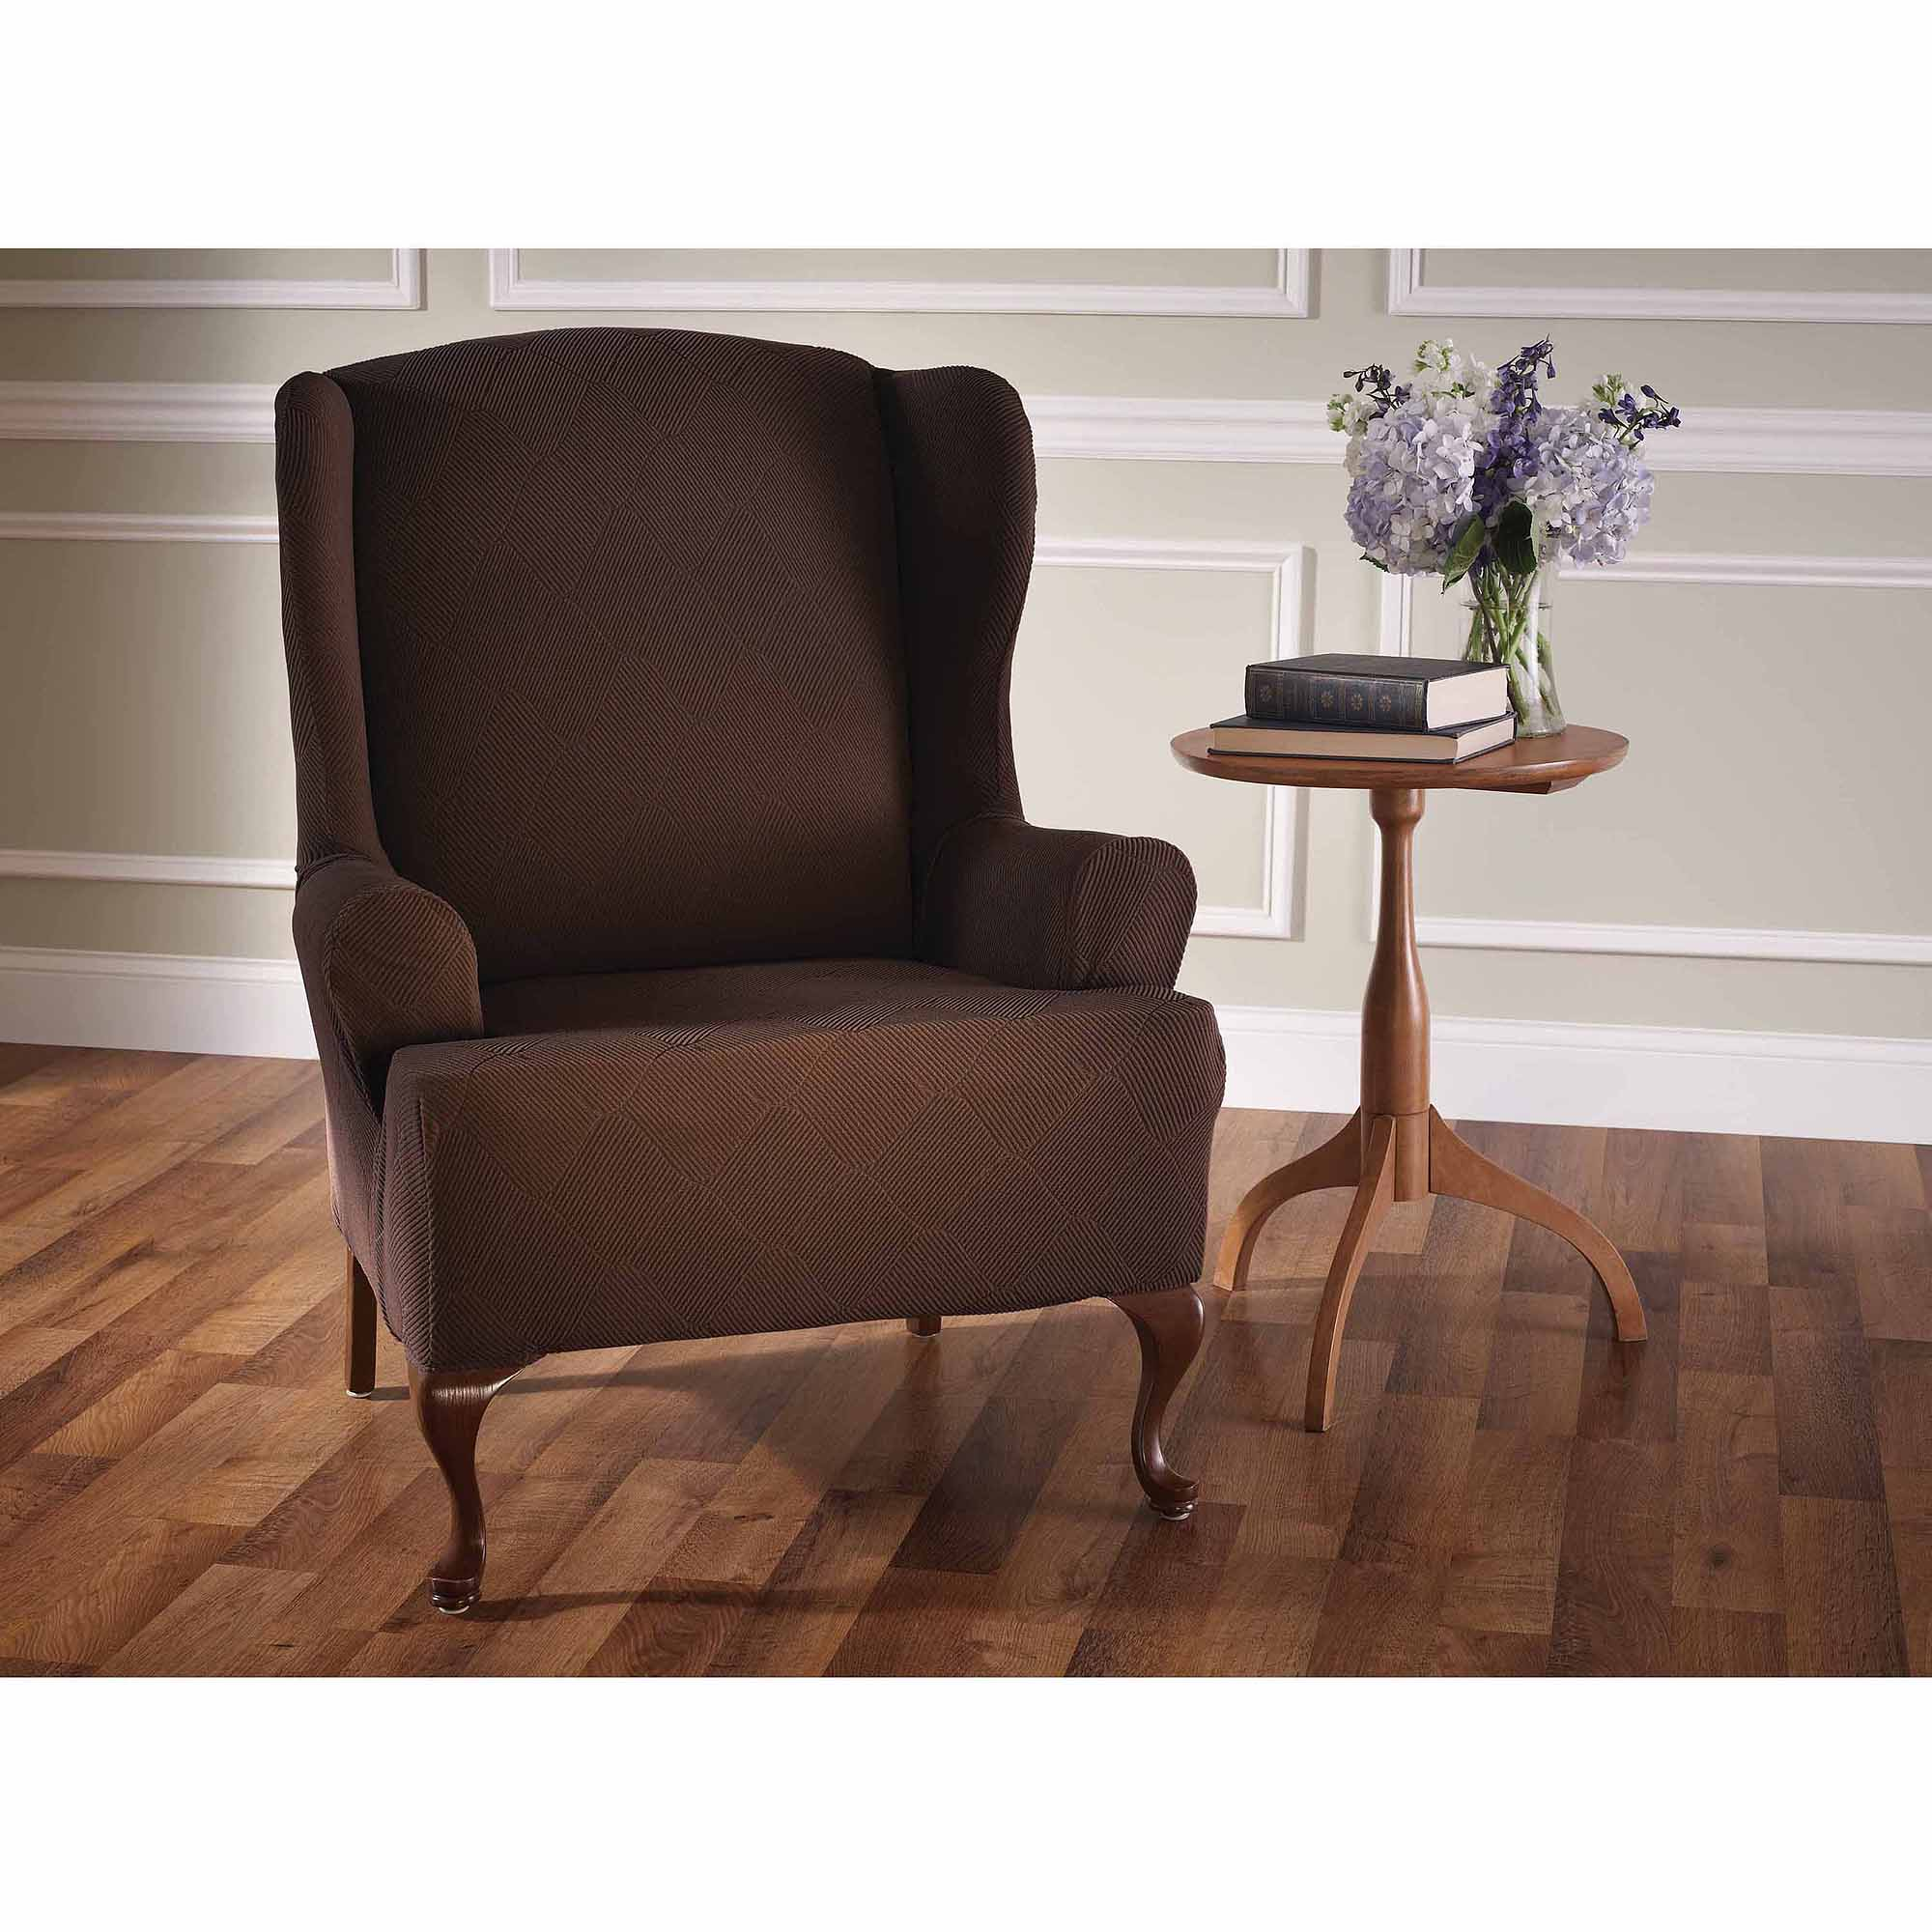 Stretch Sensations Stretch Optics Slipcover Wing Chair